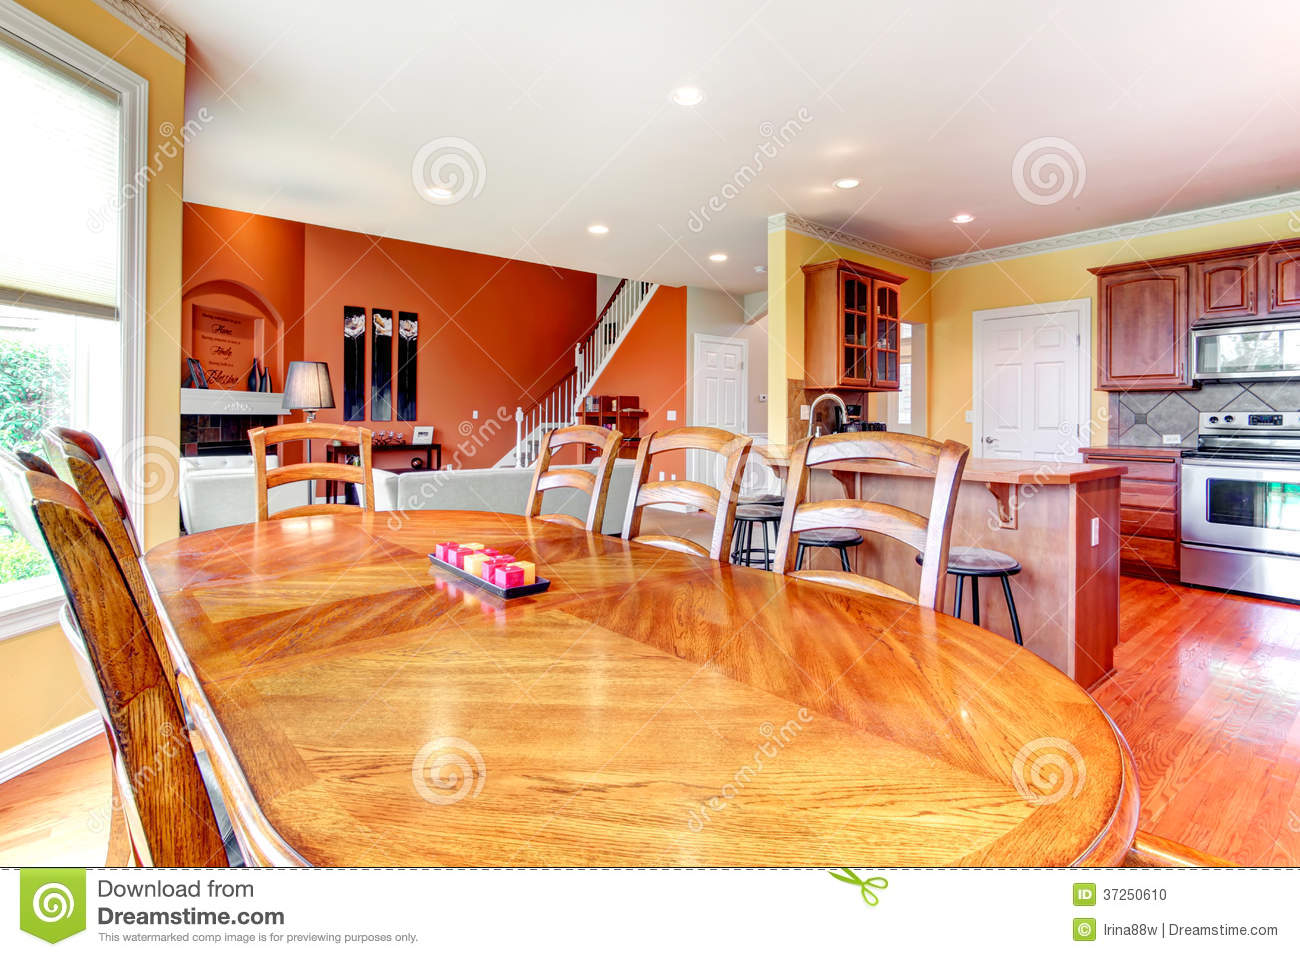 orange room kitchen stock photos - image: 29896303